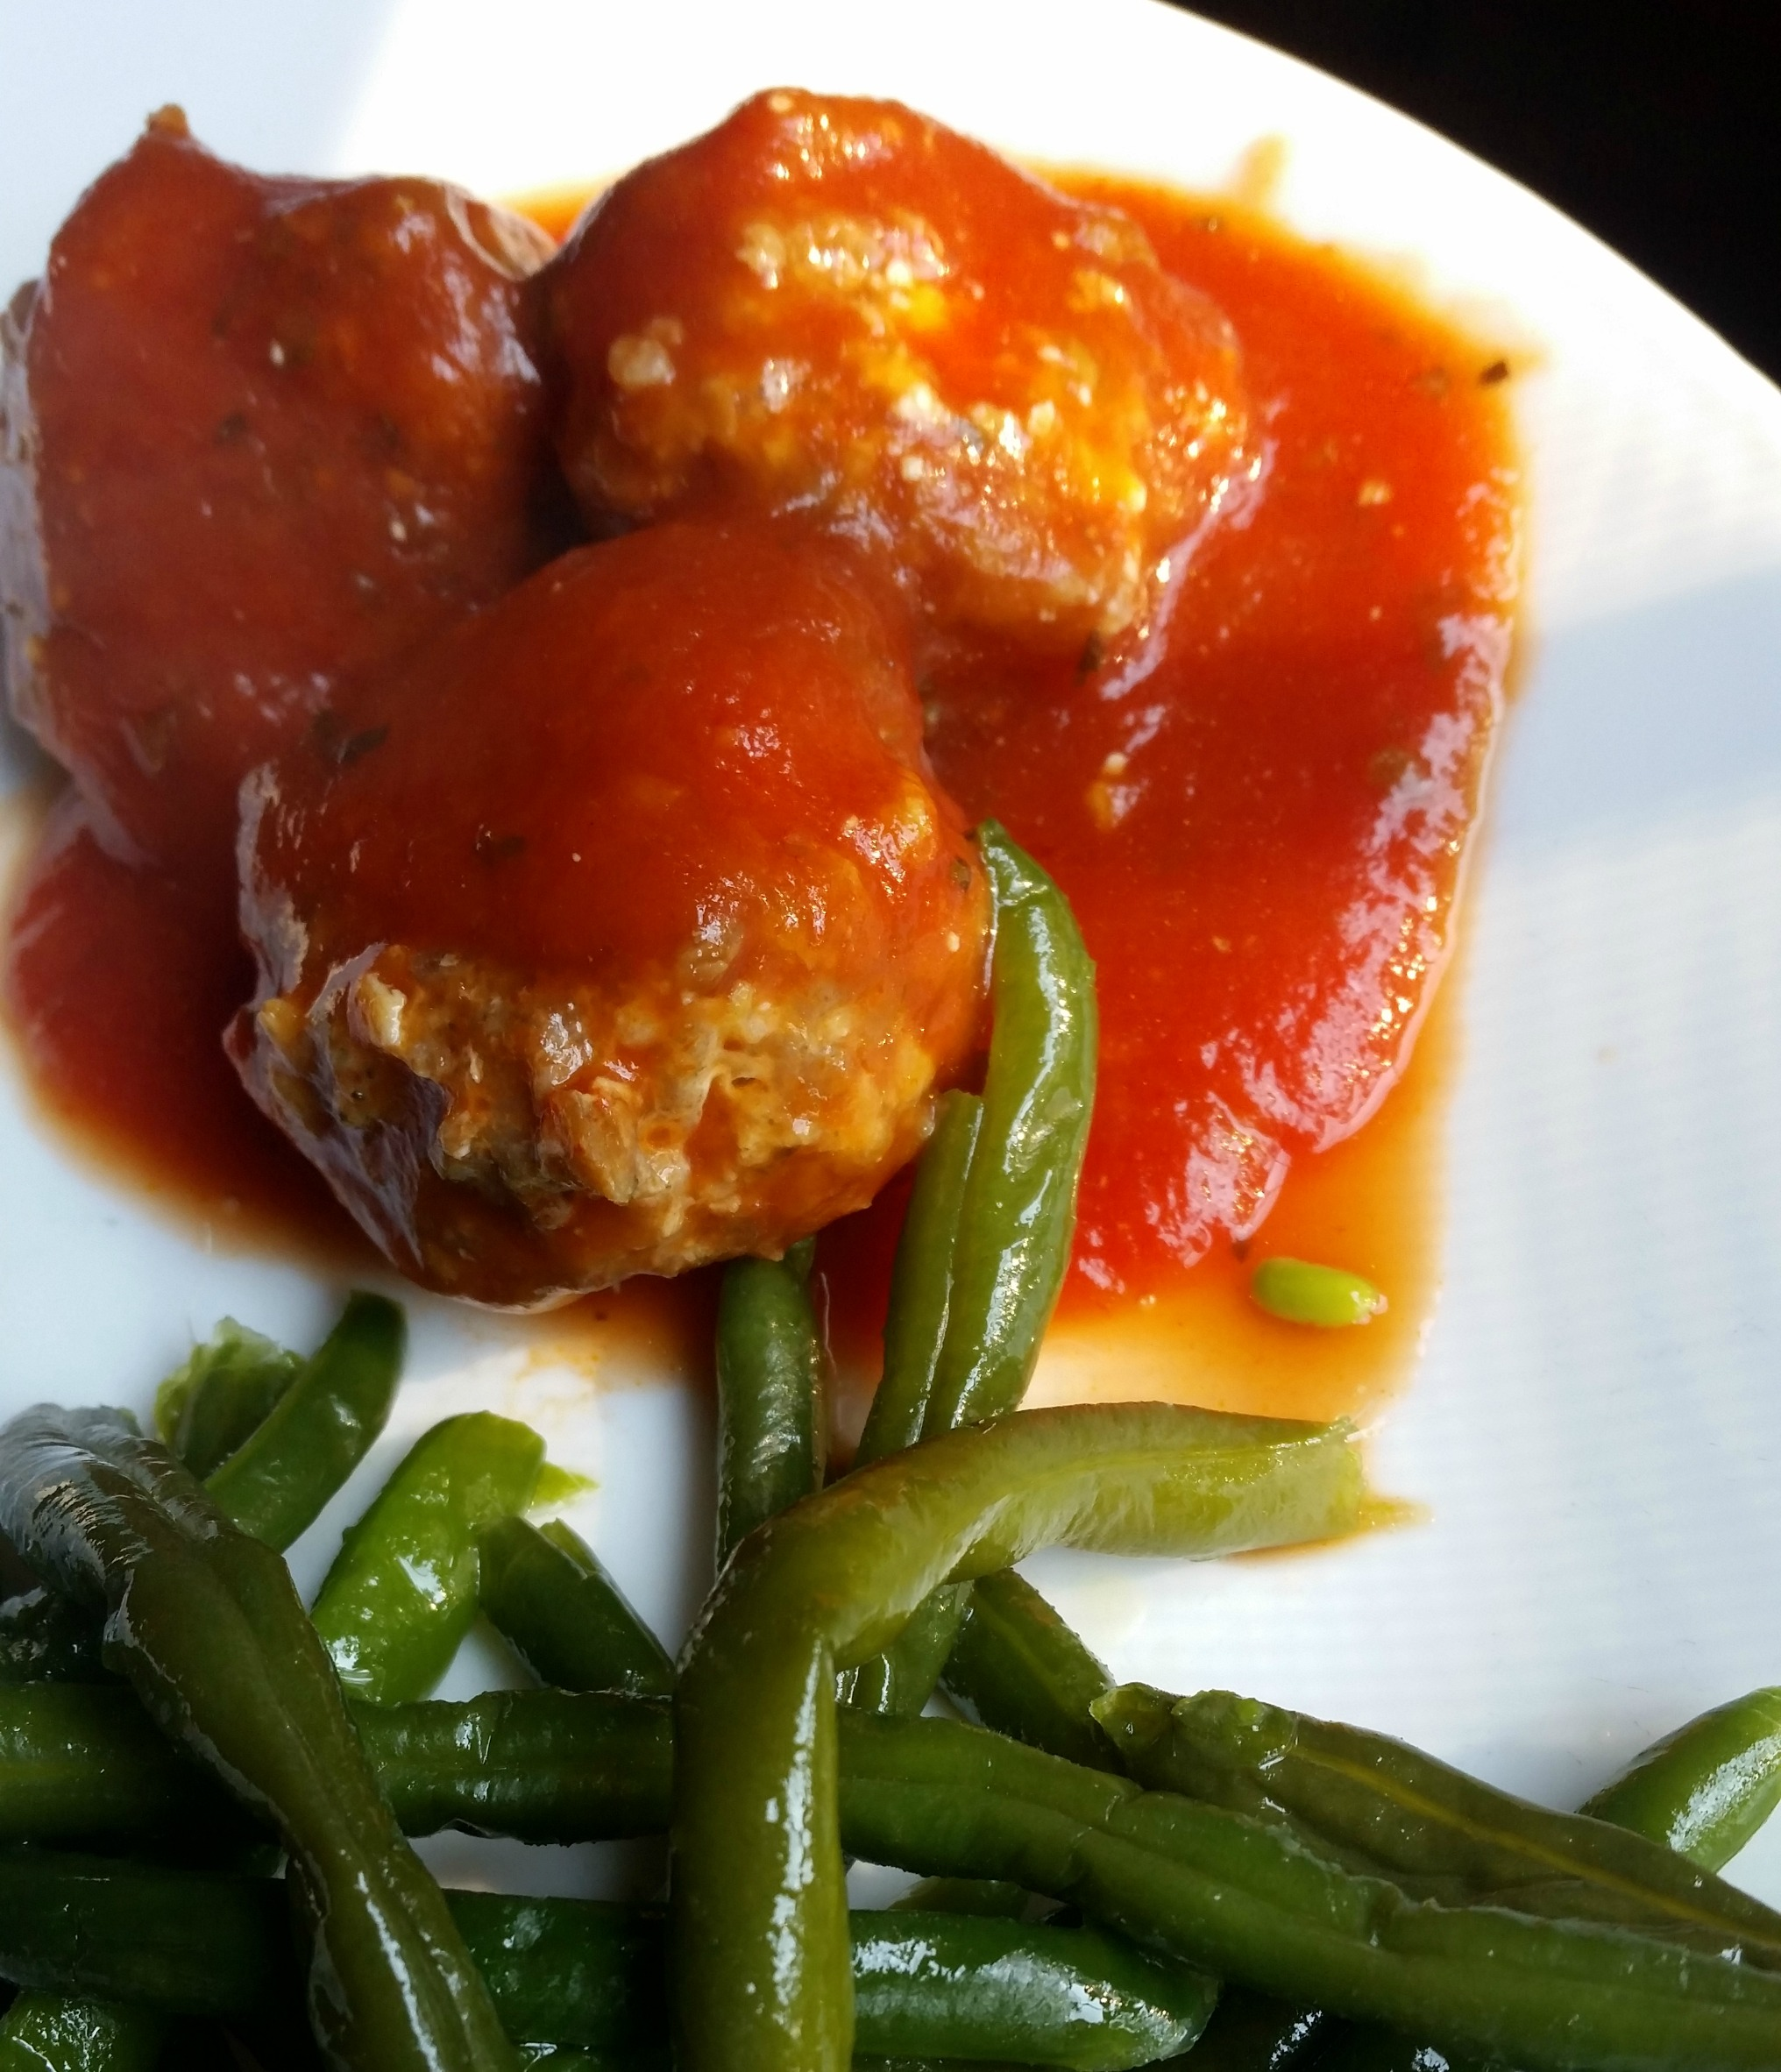 Sausage and Meatball recipe